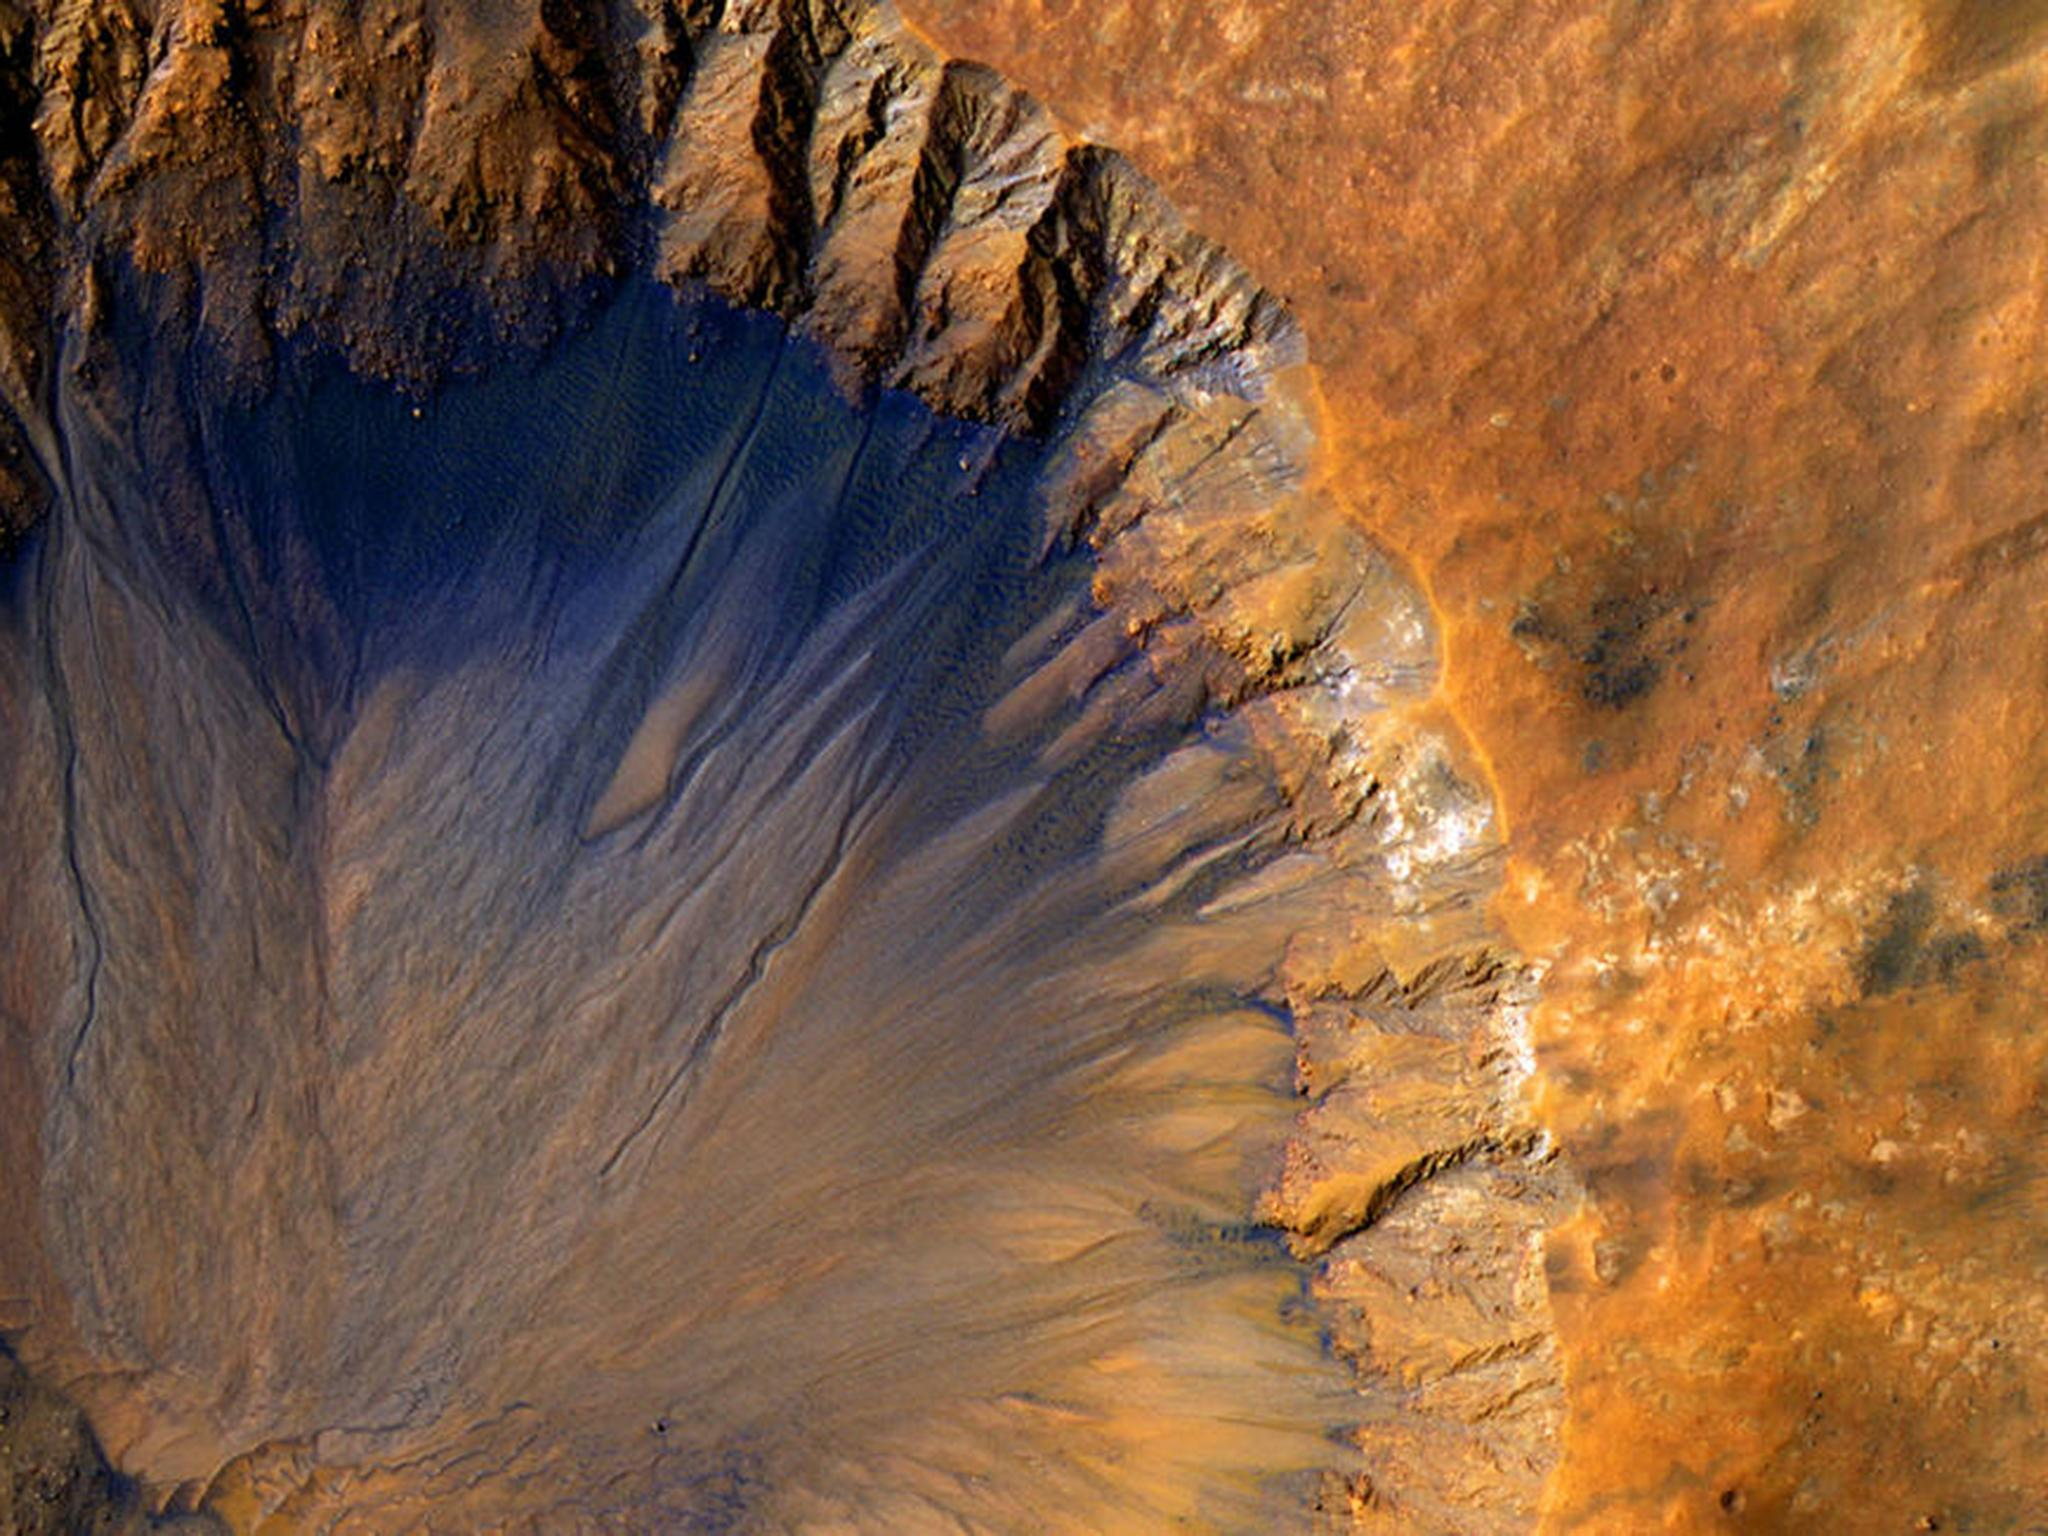 Fresh Crater Near Sirenum Fossae Region of Mars